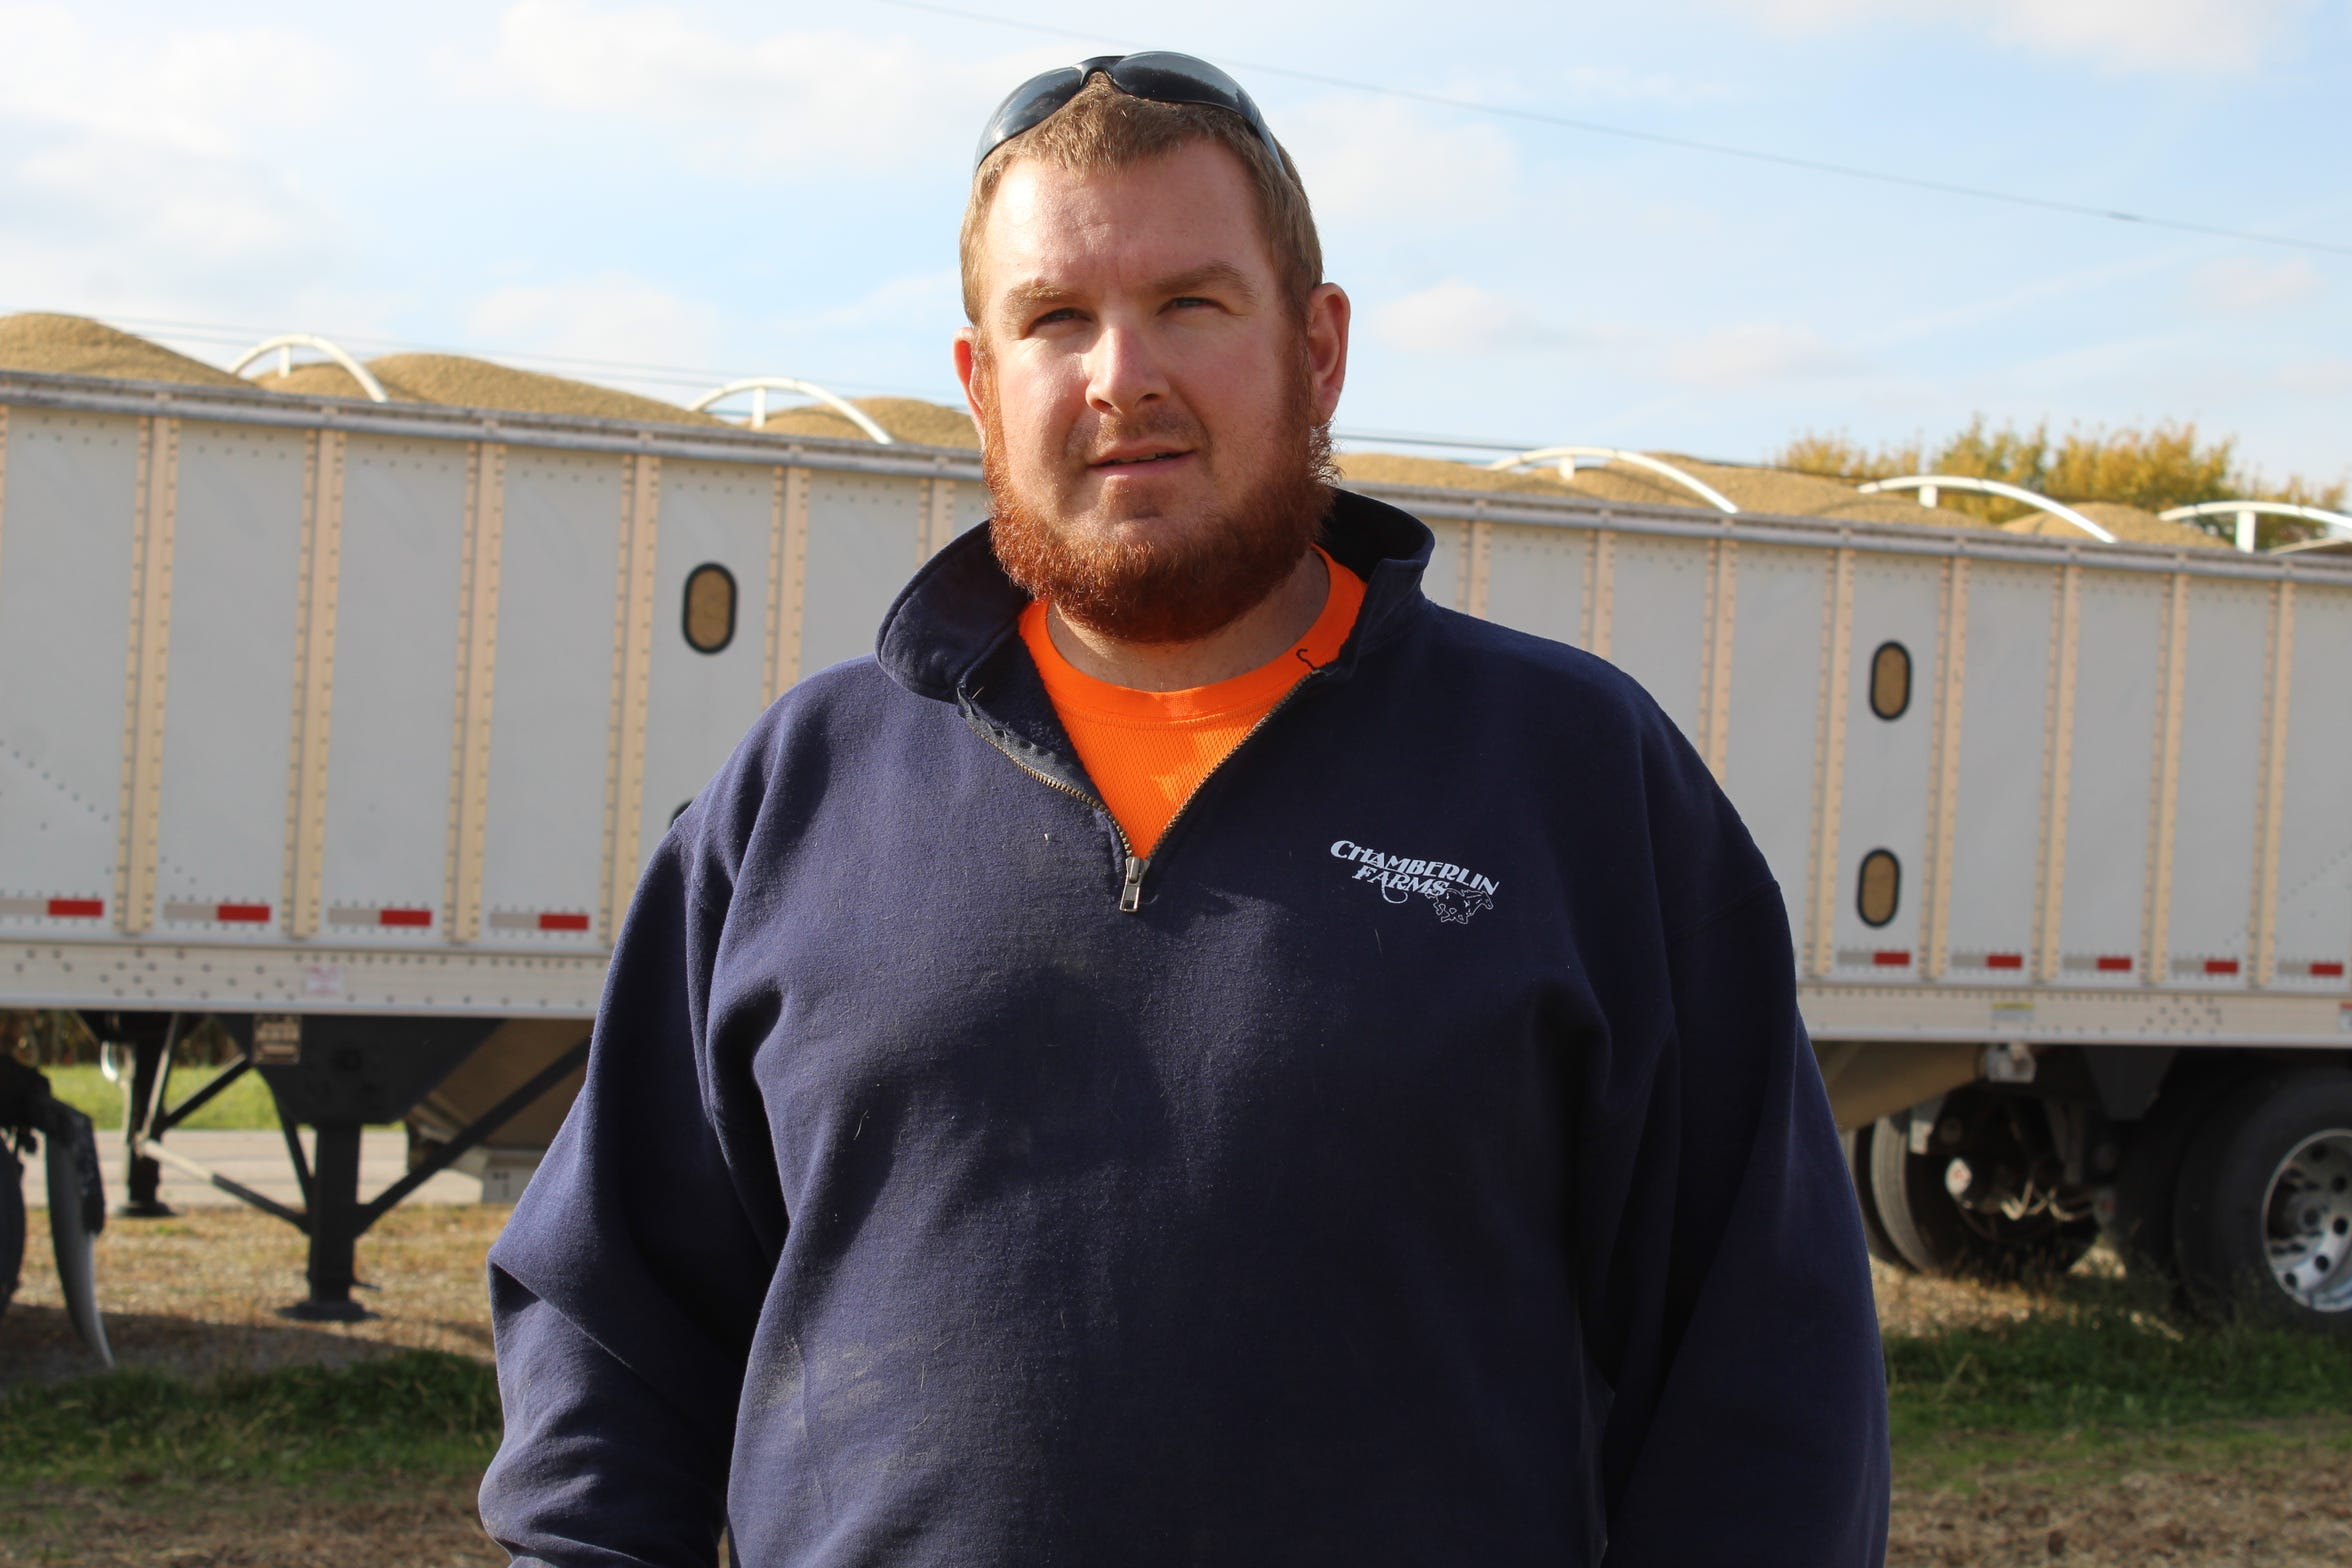 Genoa farmer Chad Gargas stands in front of a truck filled with harvested soybeans Oct. 24, as he prepares to haul a load to The Andersons in Toledo.